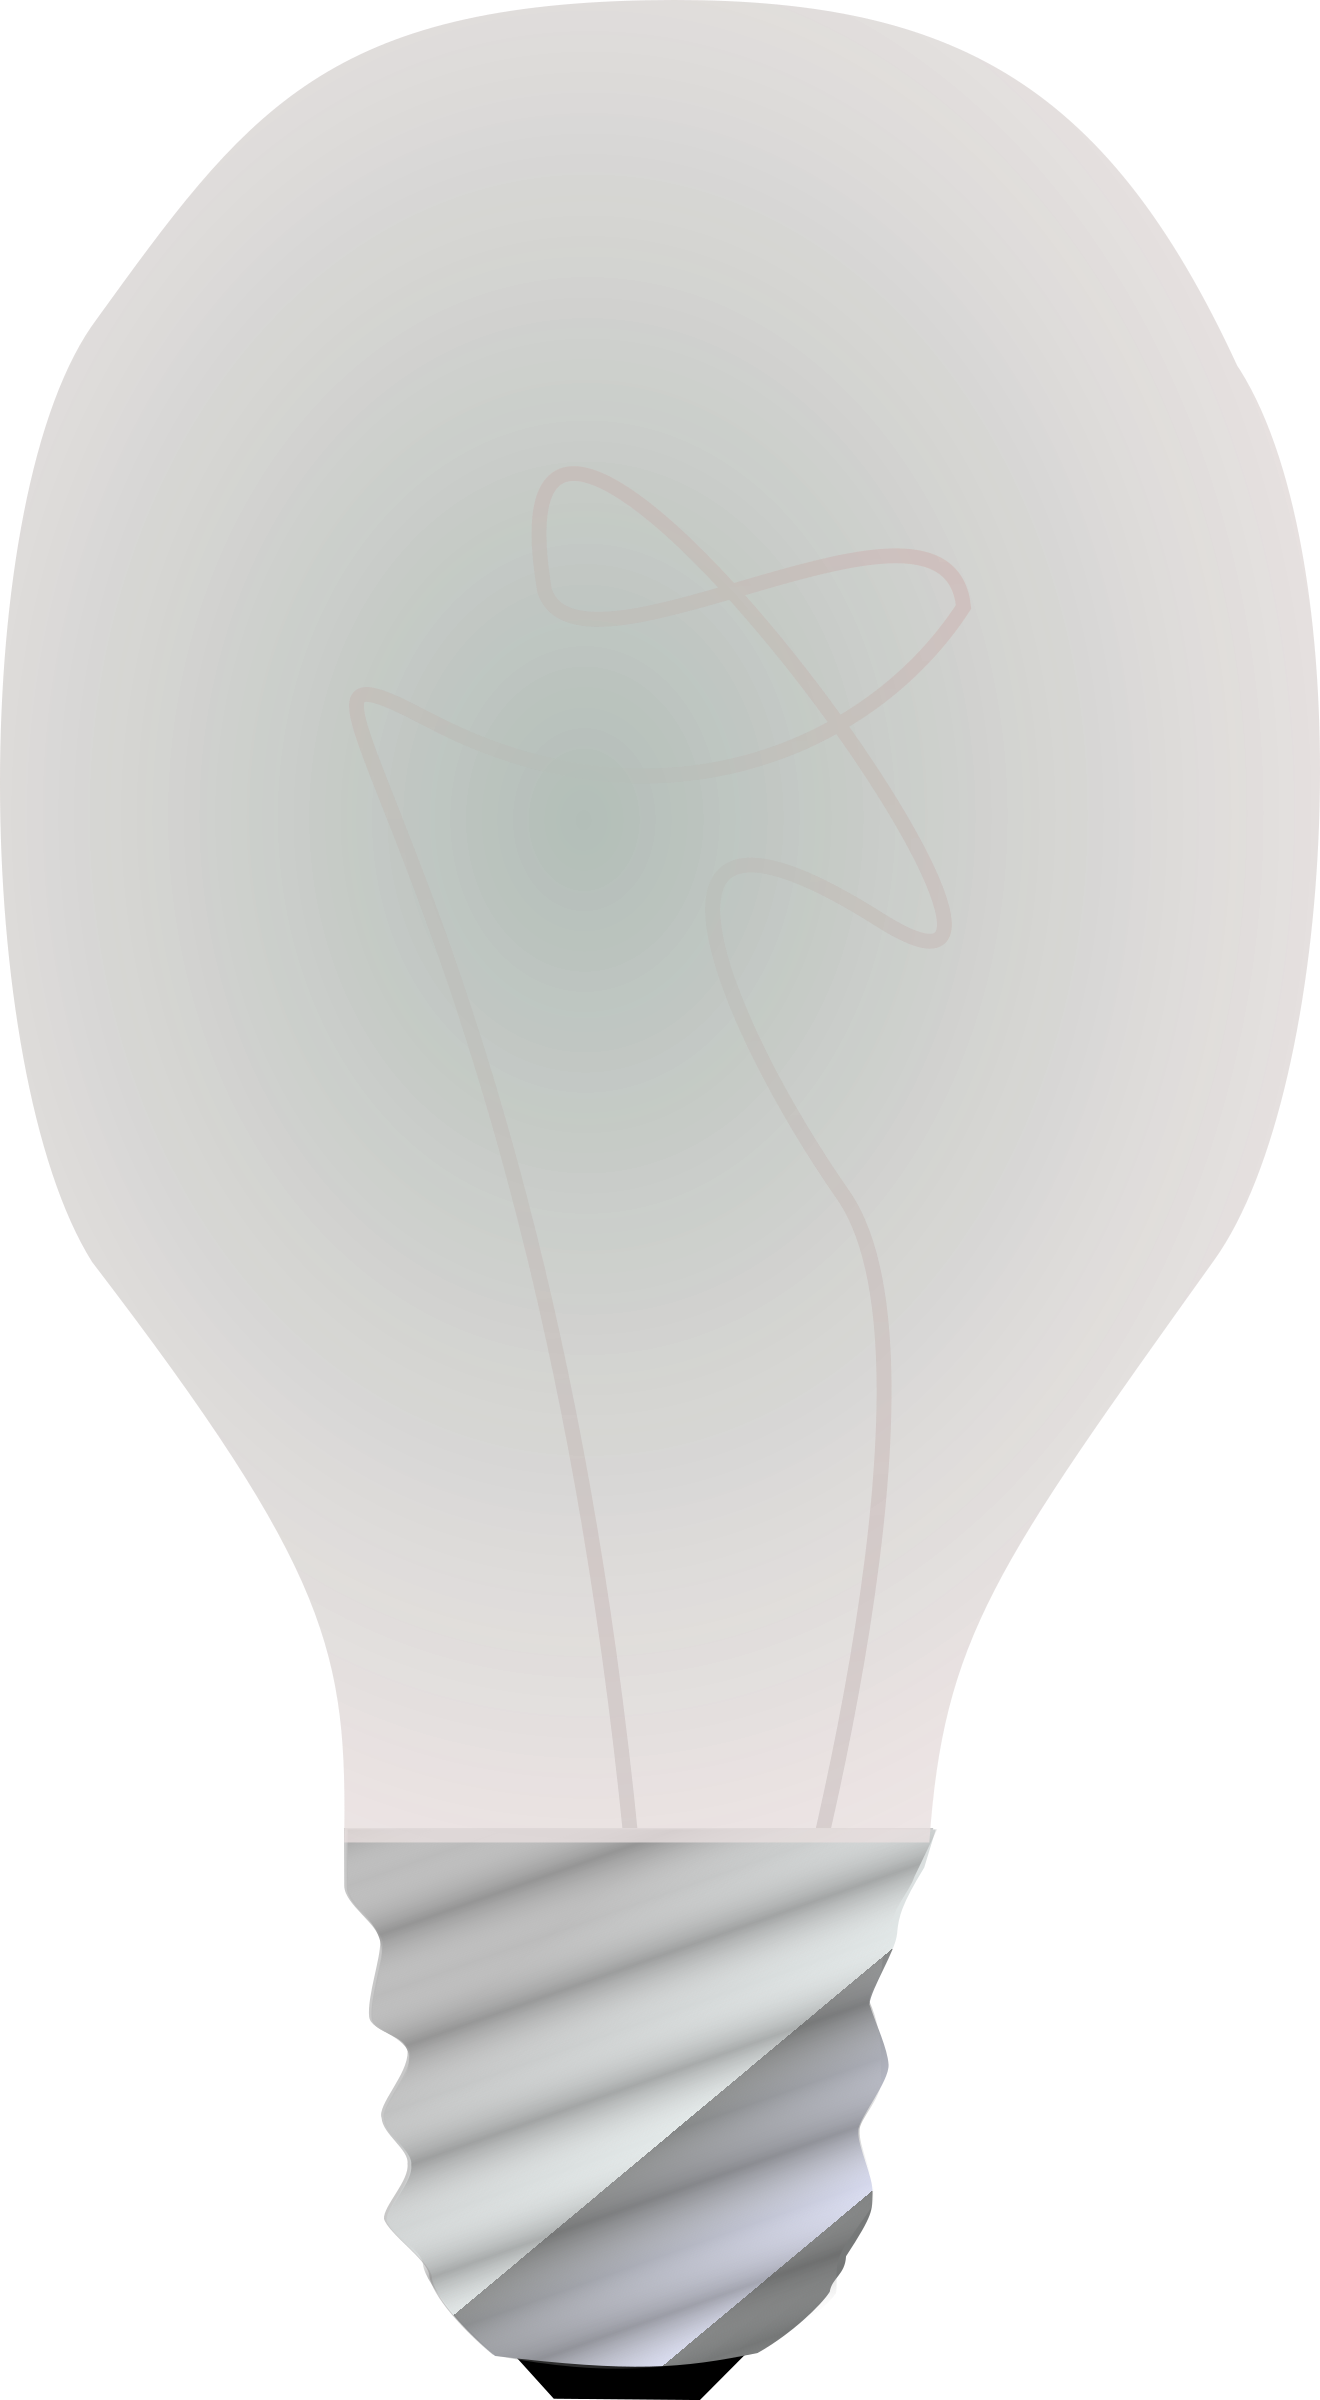 lightbulb off by Anonymous